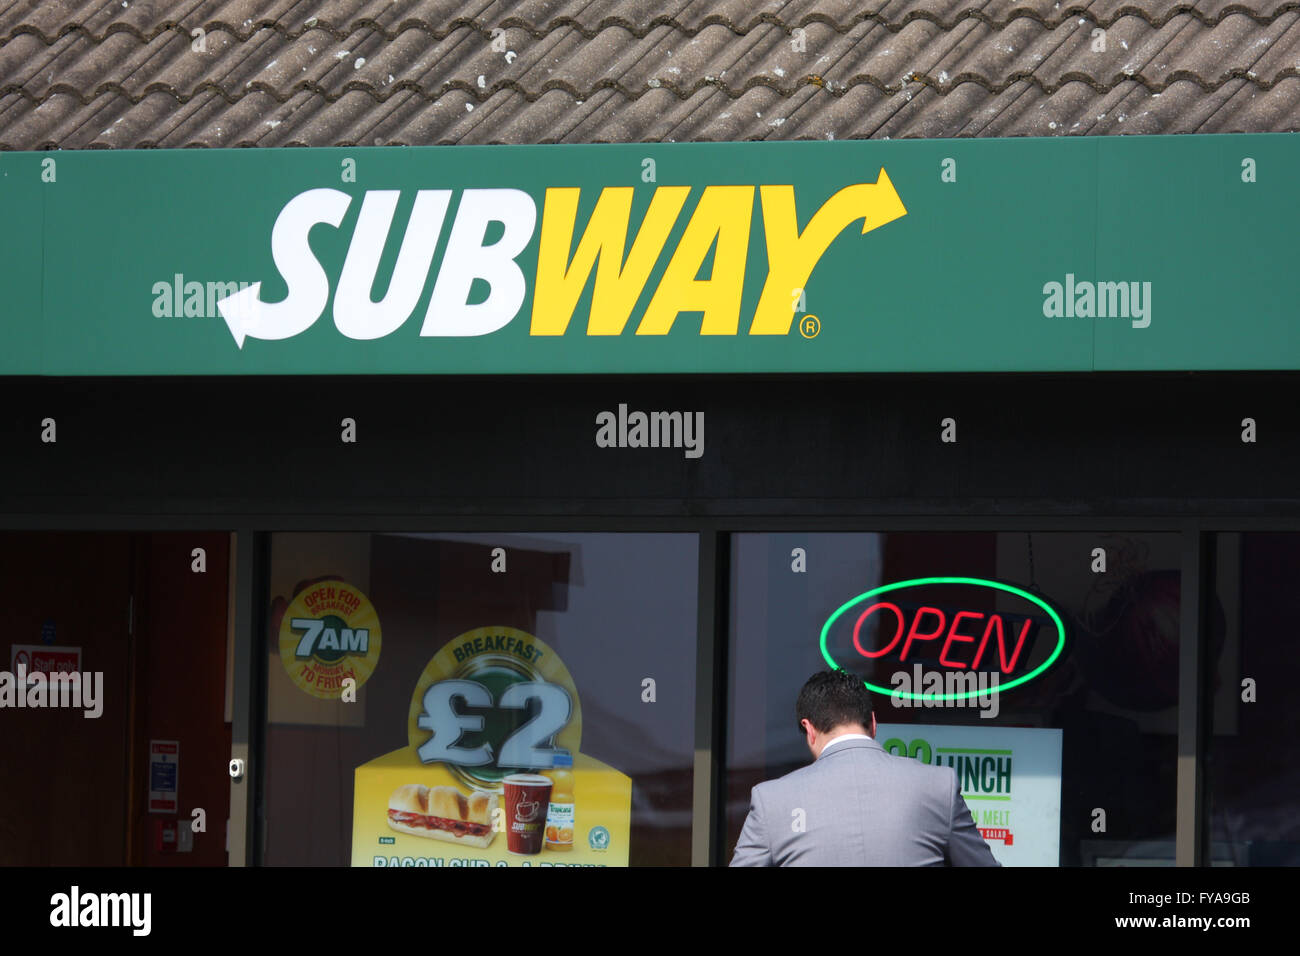 SUBWAY - Stock Image